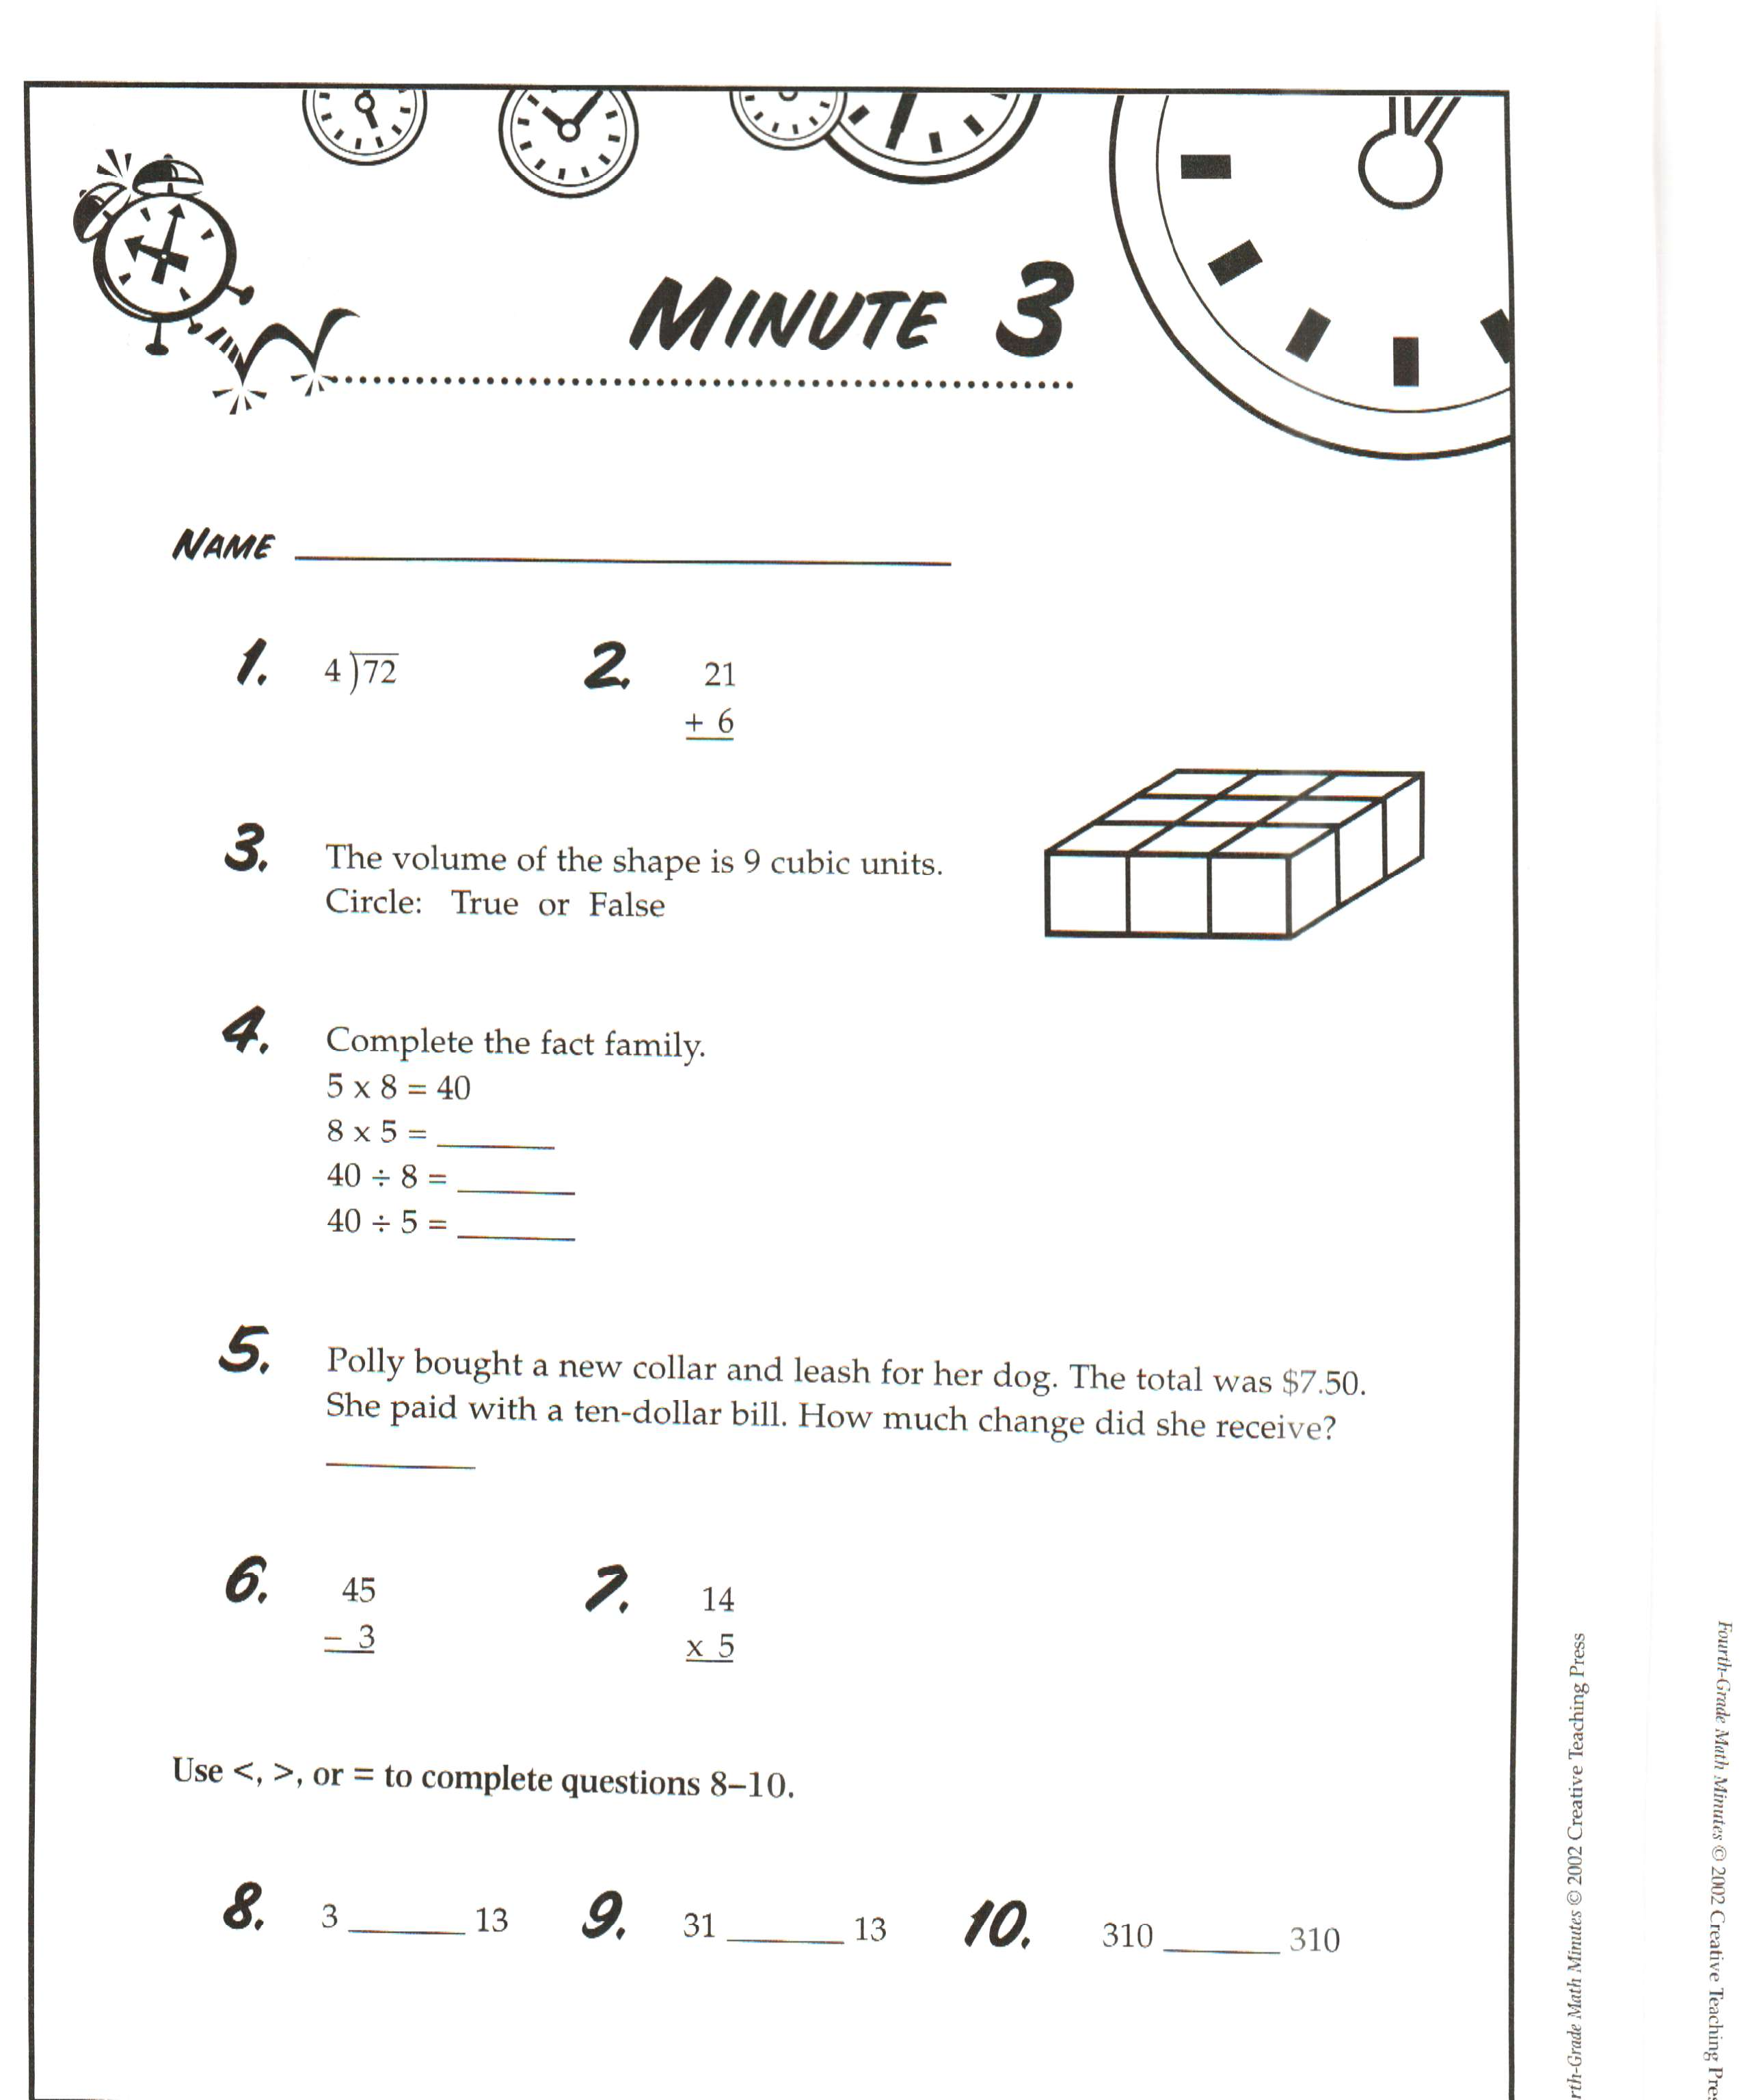 Worksheet Math Minute Worksheet 3rd grade daily math minutes mrs faoro download file